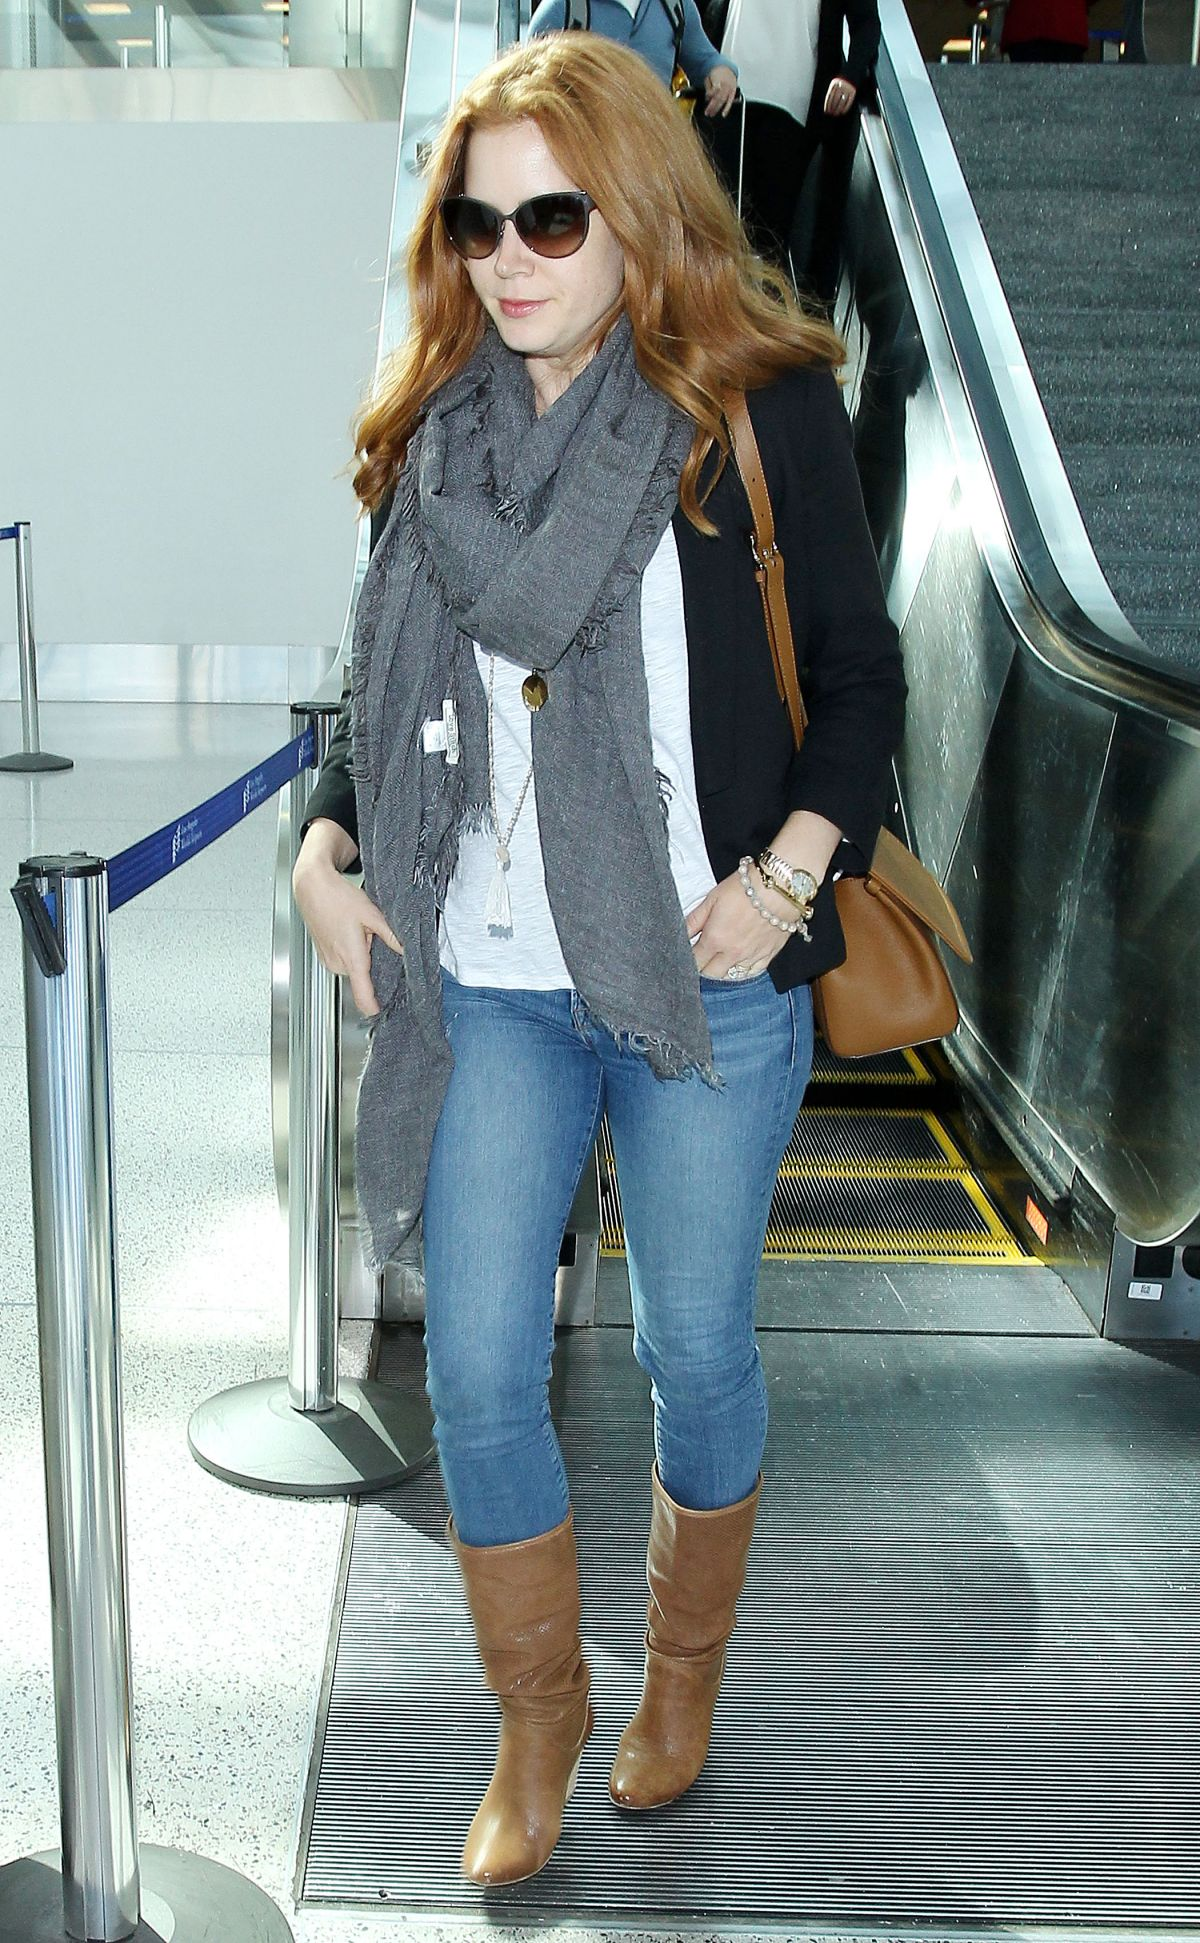 AMY ADAMS in Jeans Arrives at LAX Airport in Los Angeles